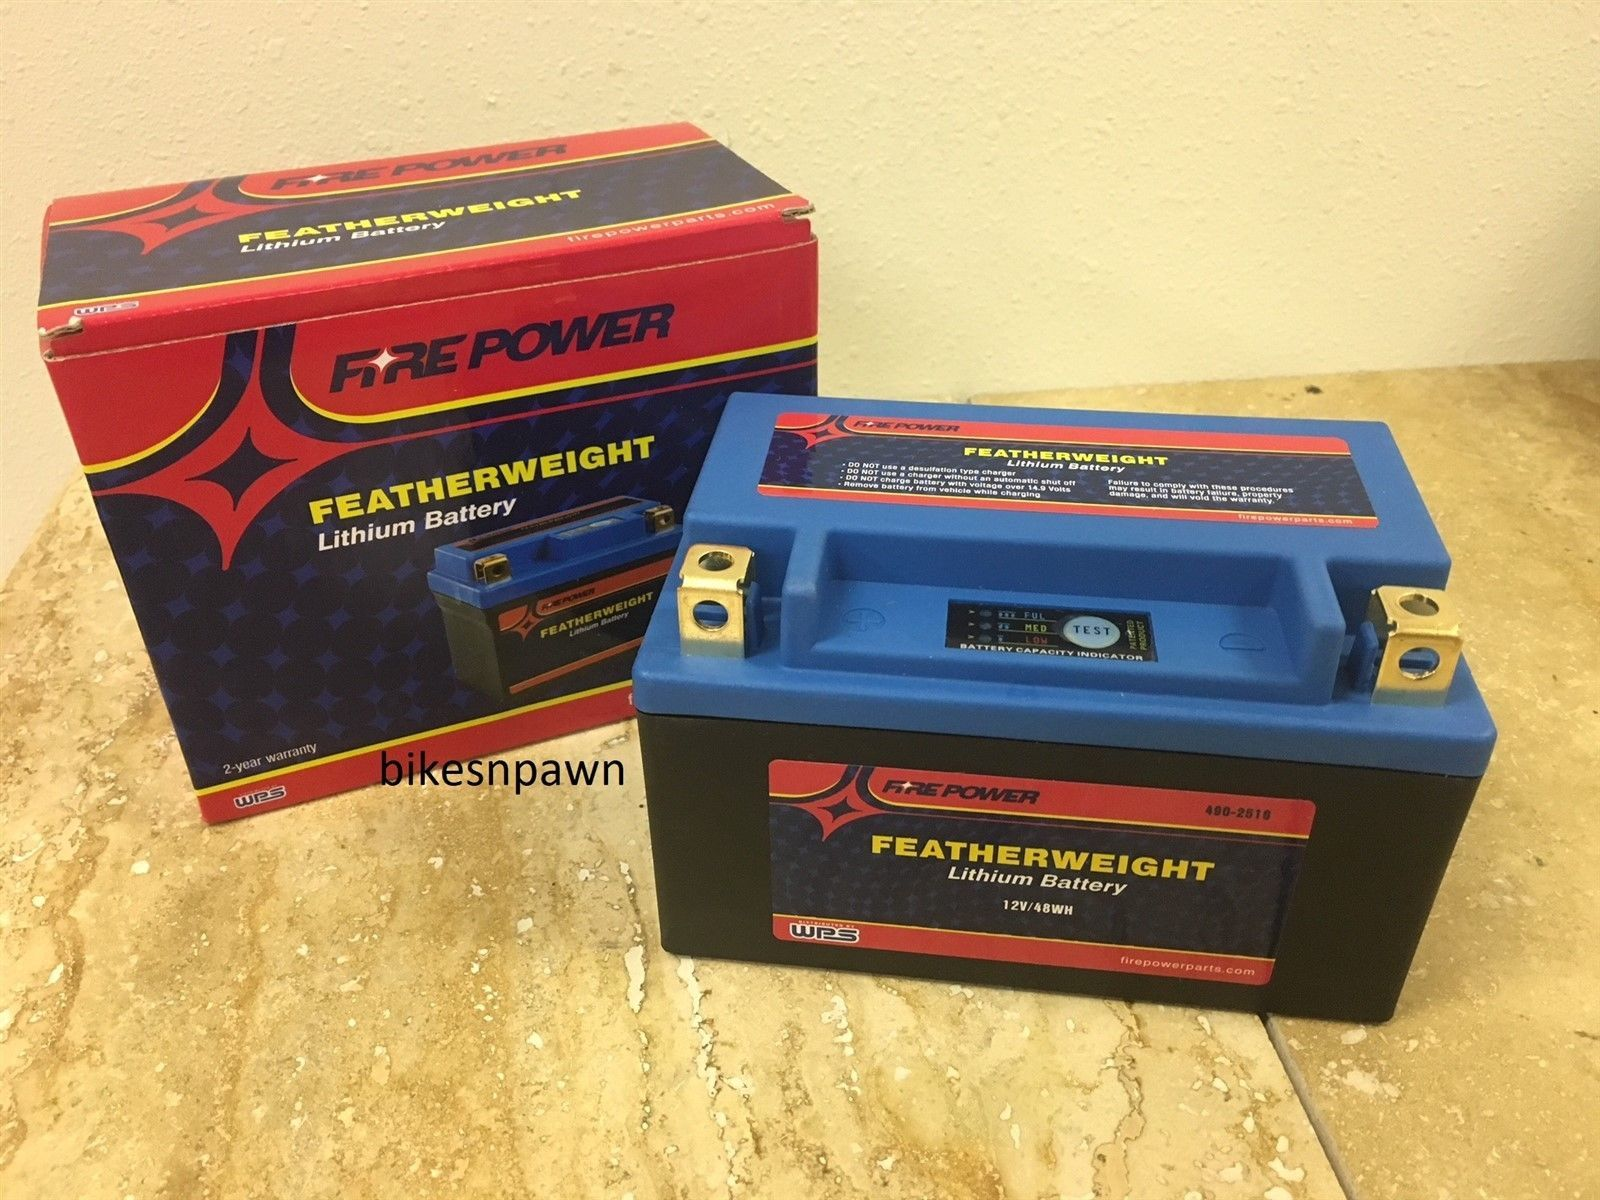 WPS Fire Power Featherweight Lithium Ion Motorcycle Battery 12N7A-4B / YB7B-B